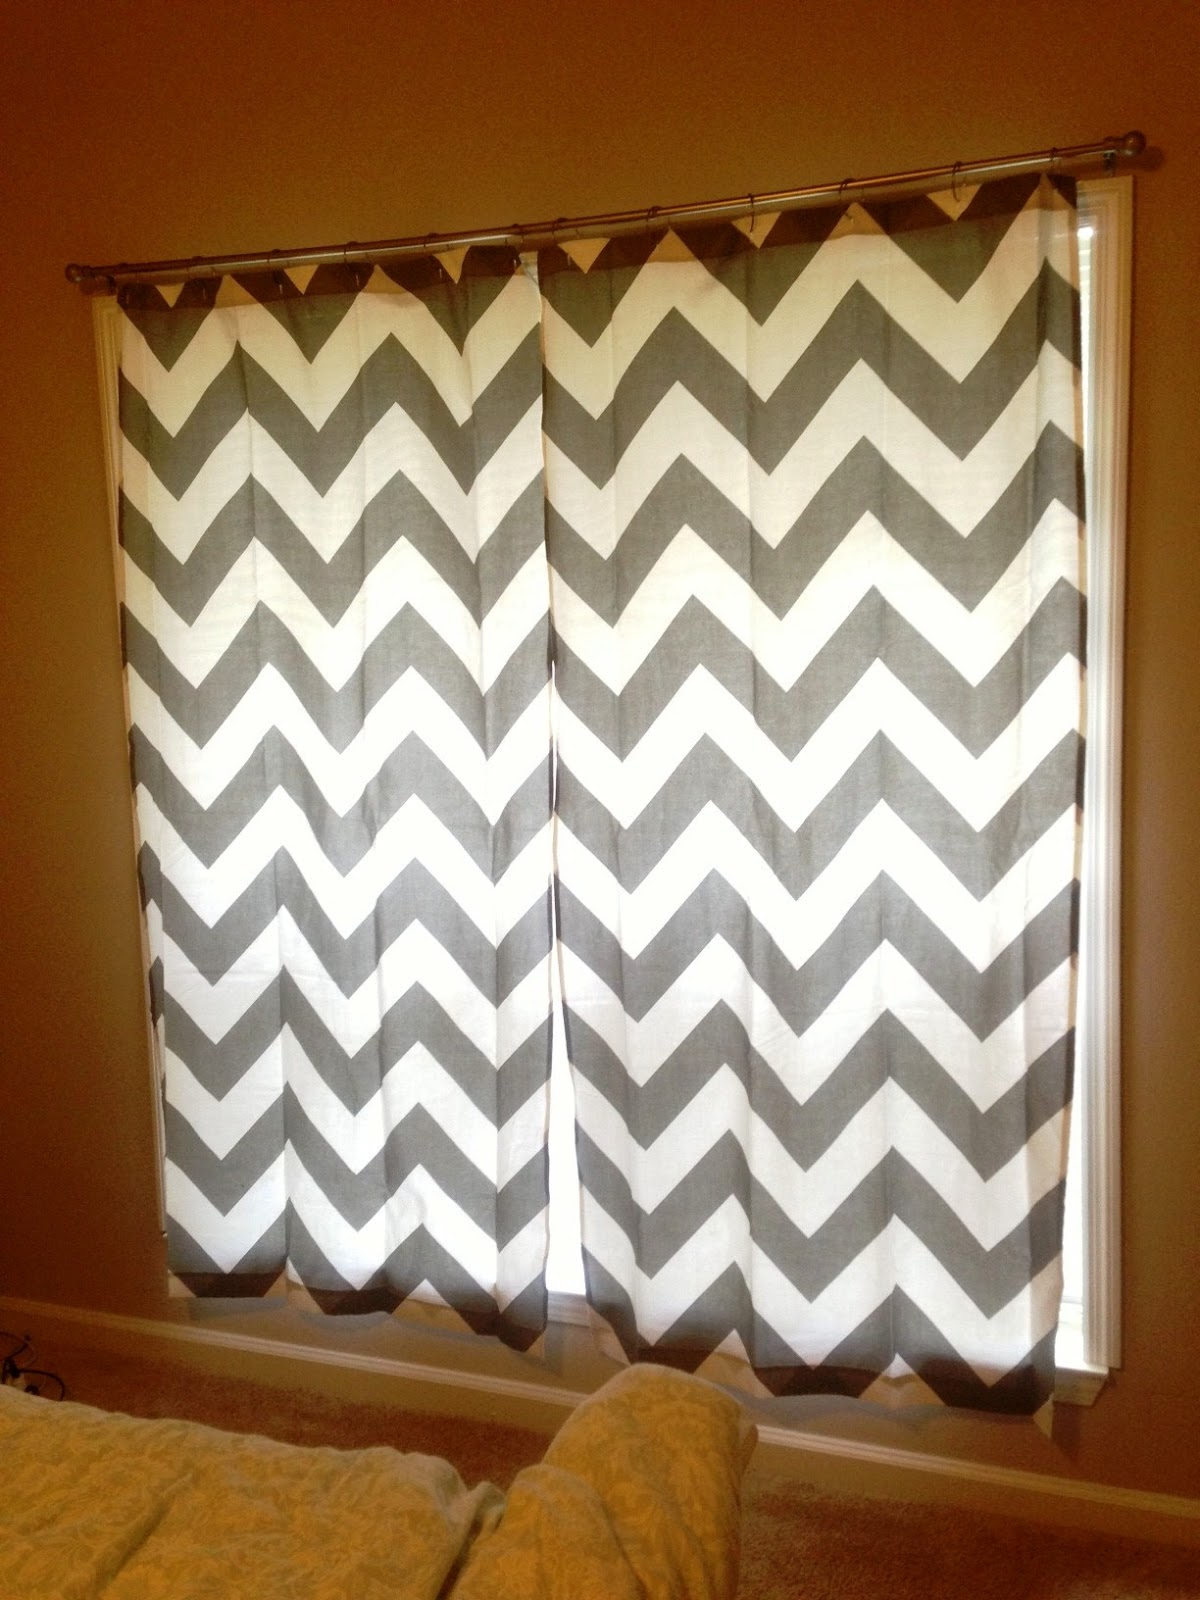 Brilliant Soundproof Curtains Target for Best Curtain Ideas: Soundproof Curtains Target | Soundproofing Curtains | Soundproof Curtains Target